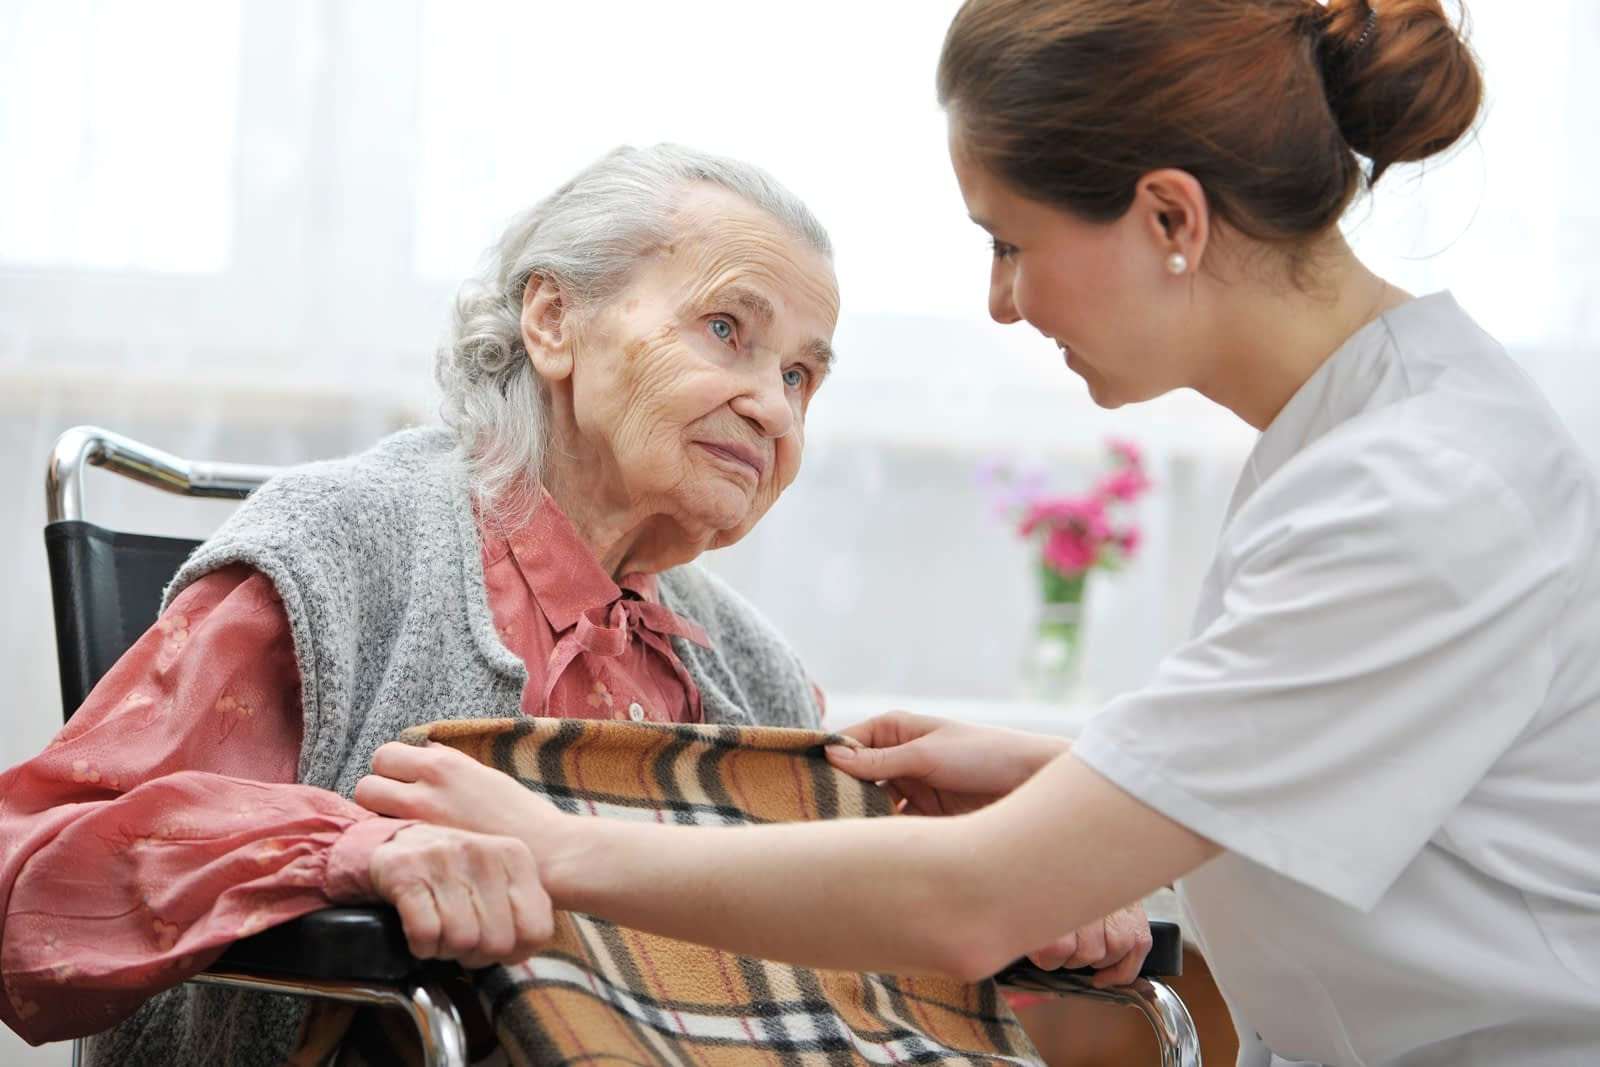 Read more about the article Compassionate In-Home Care: A Focus On Finding The Right People To Assist Your Elderly Loved One